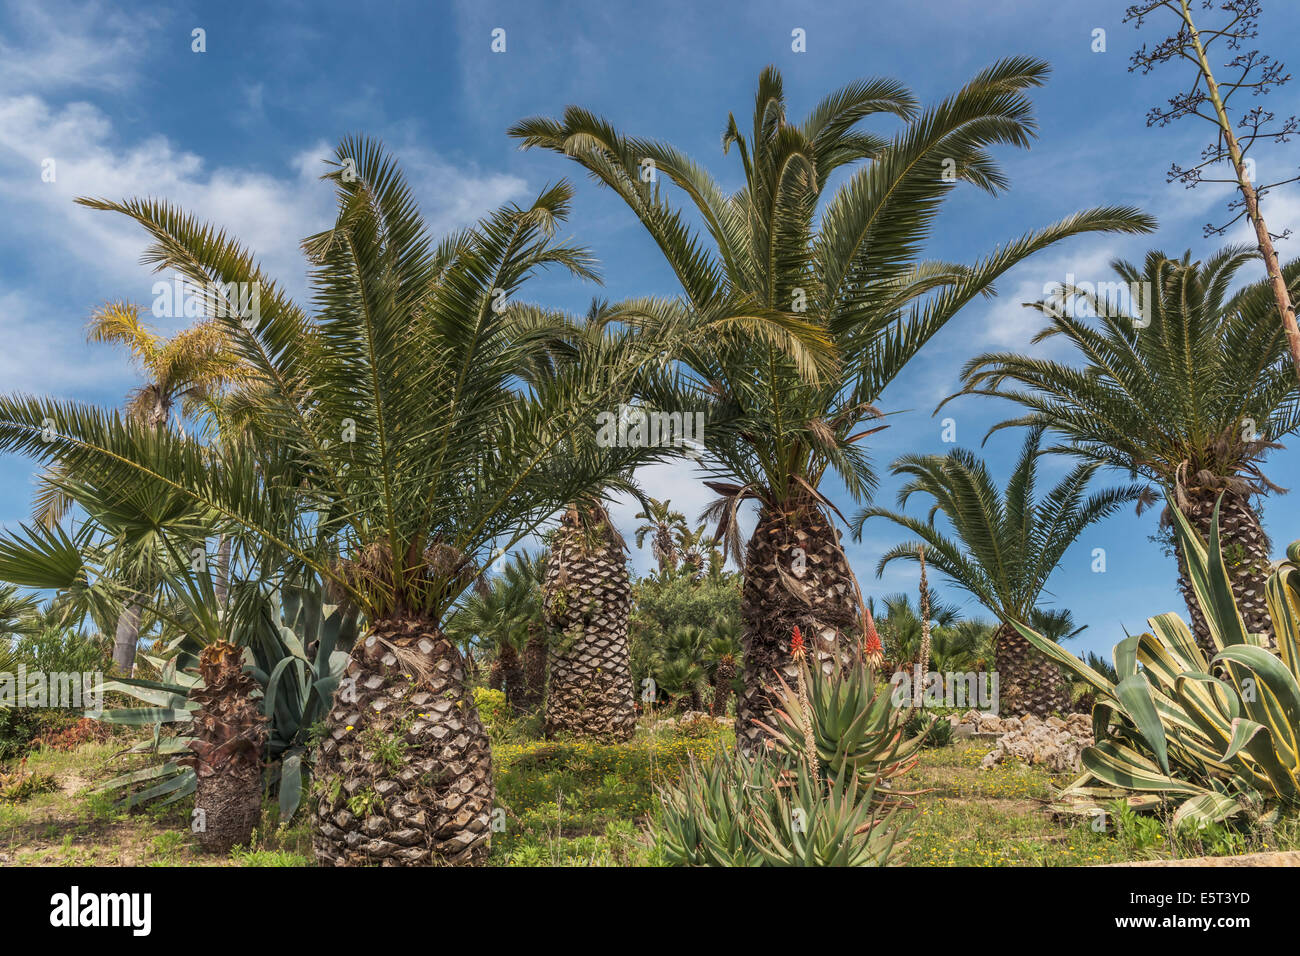 Some date palms (Phoenix) stand side by side - Stock Image